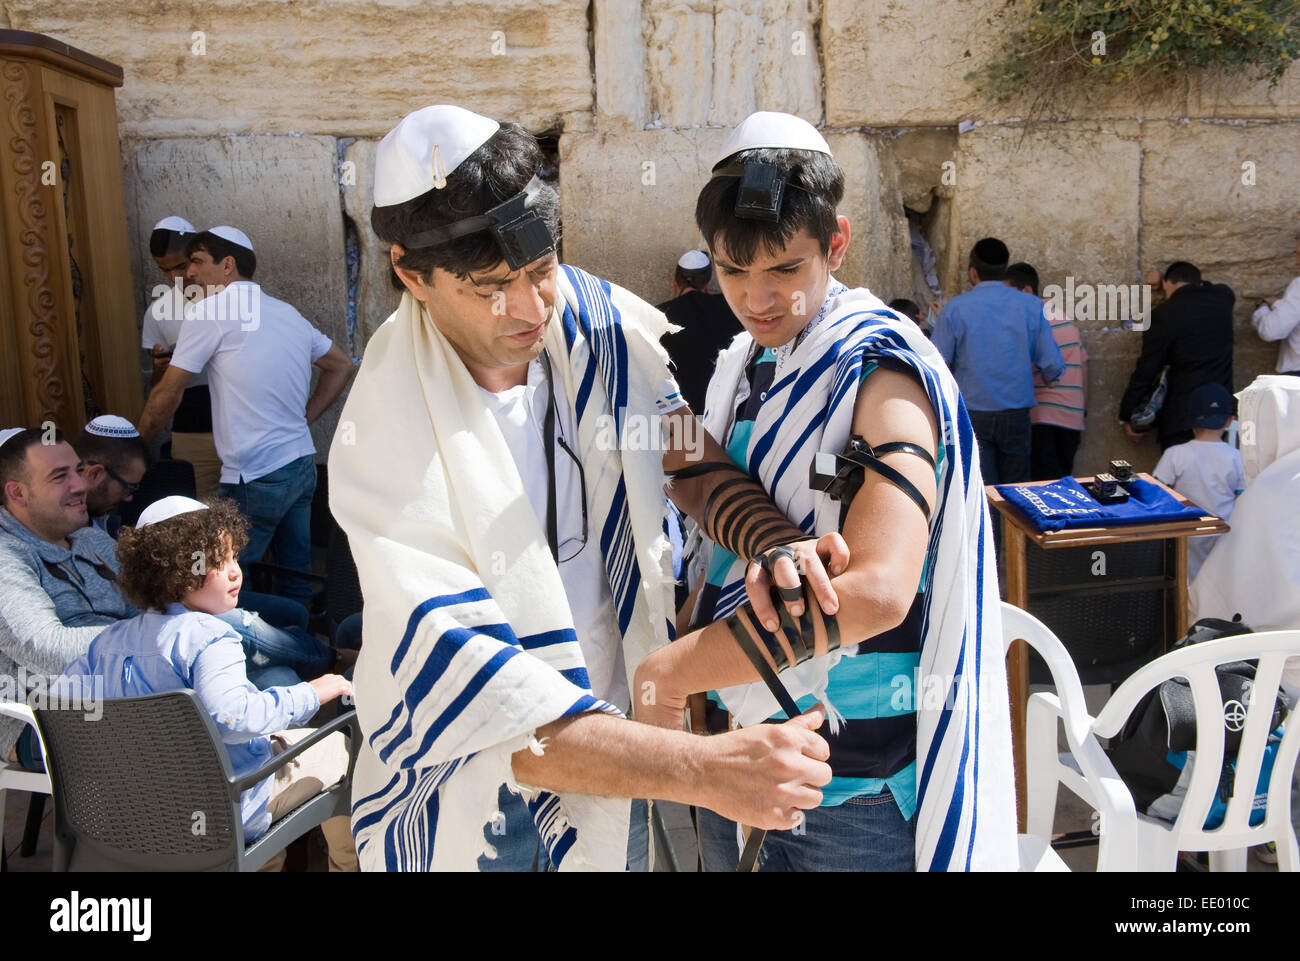 A jewish man is preparing the tefillin around the arm of a boy of 13 years old before his Bar mitzvah - Stock Image